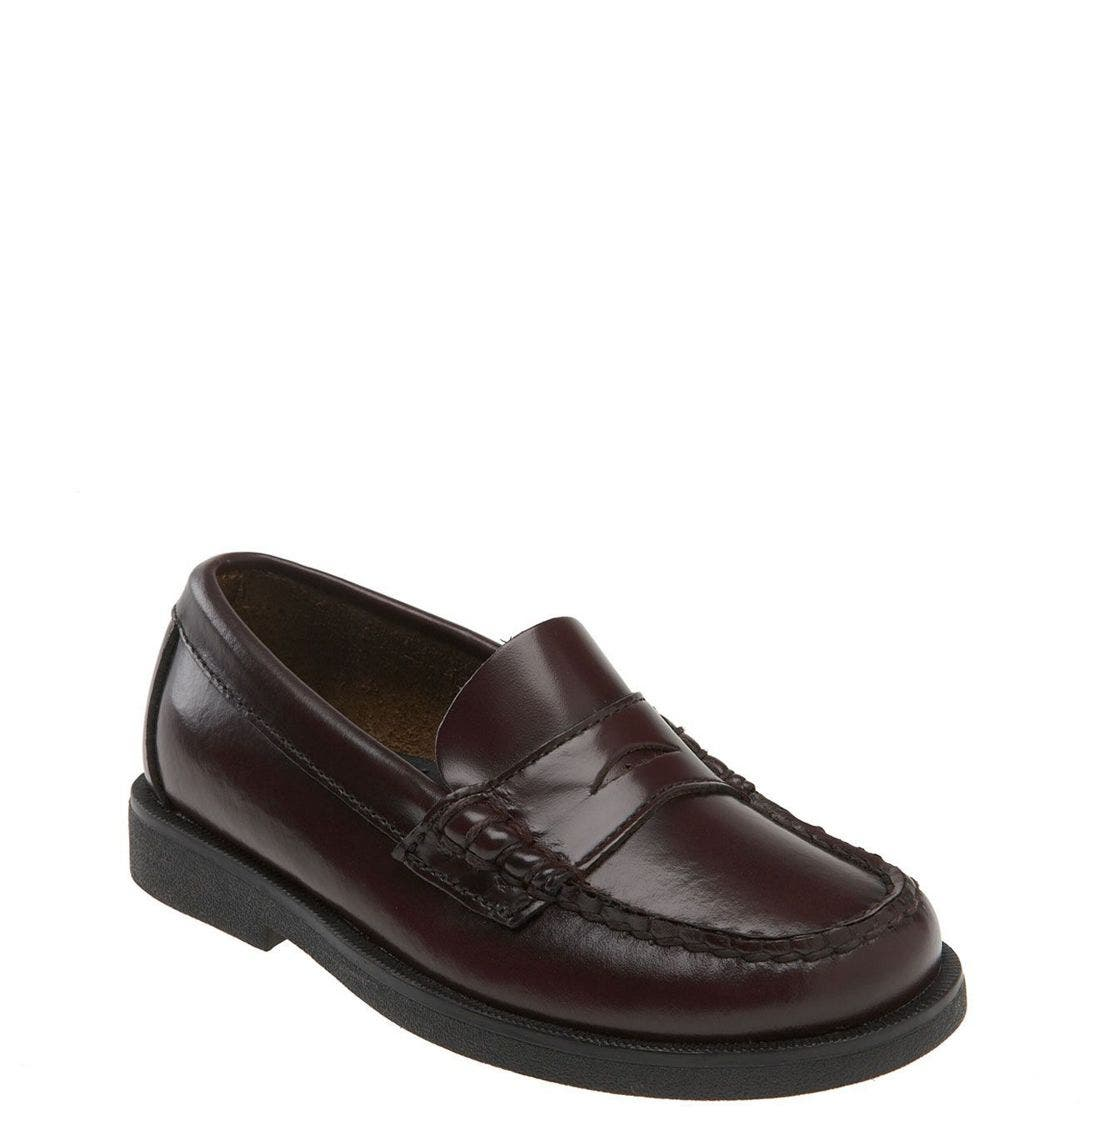 Main Image - Sperry Kids 'Colton' Loafer (Little Kid & Big Kid)